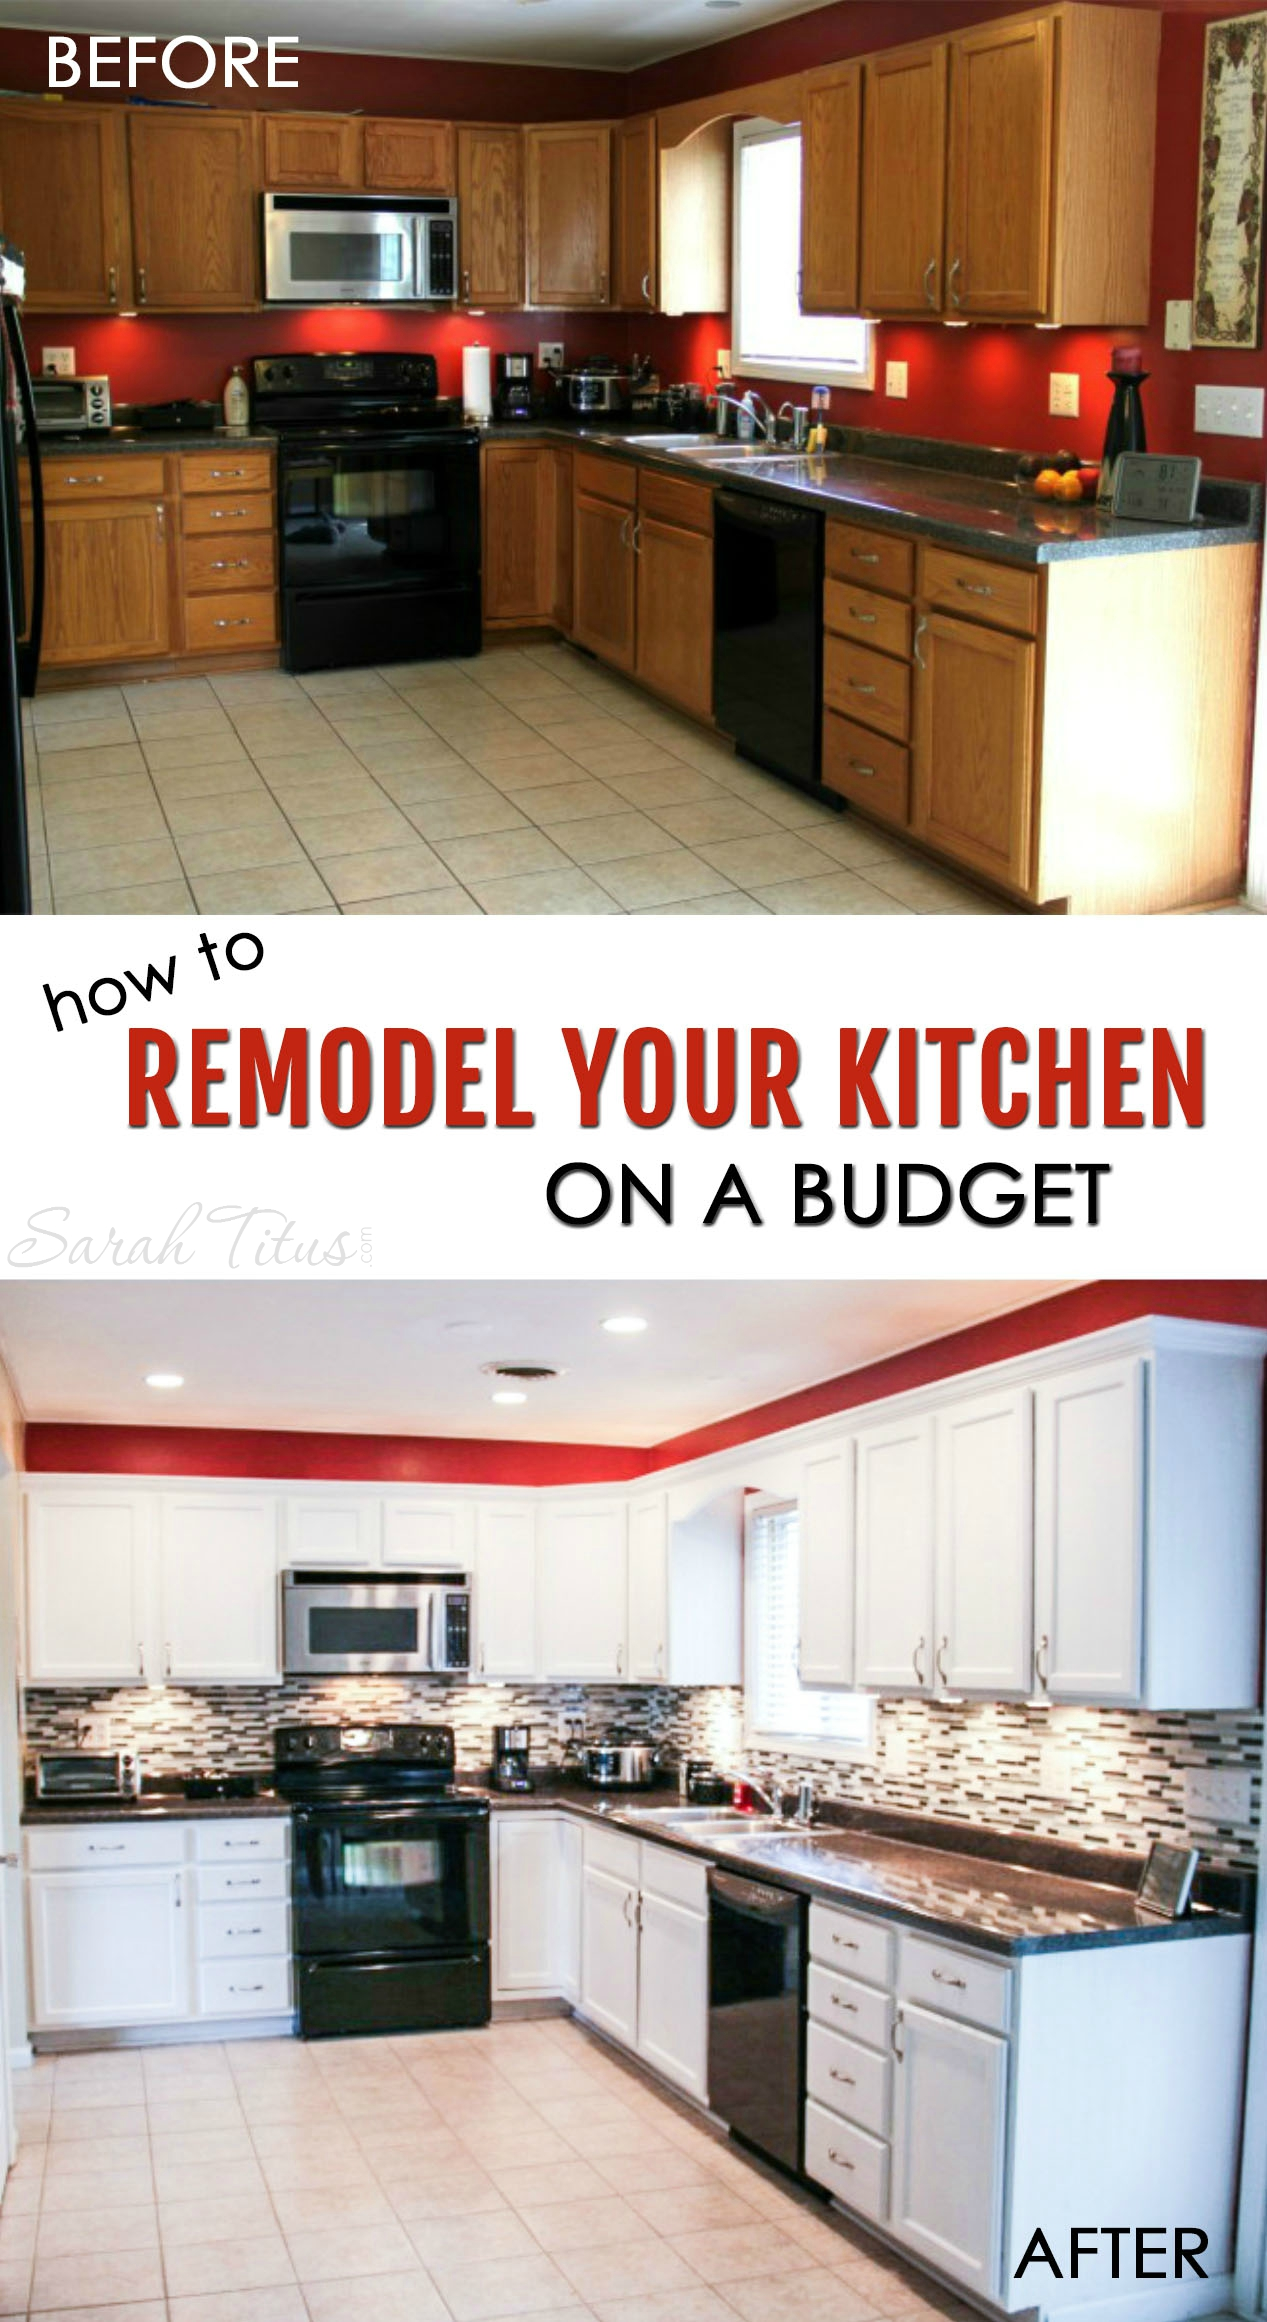 how to remodel your kitchen on a budget how to remodel kitchen Most kitchen renovations are very expensive but this trick can make your kitchen look brand